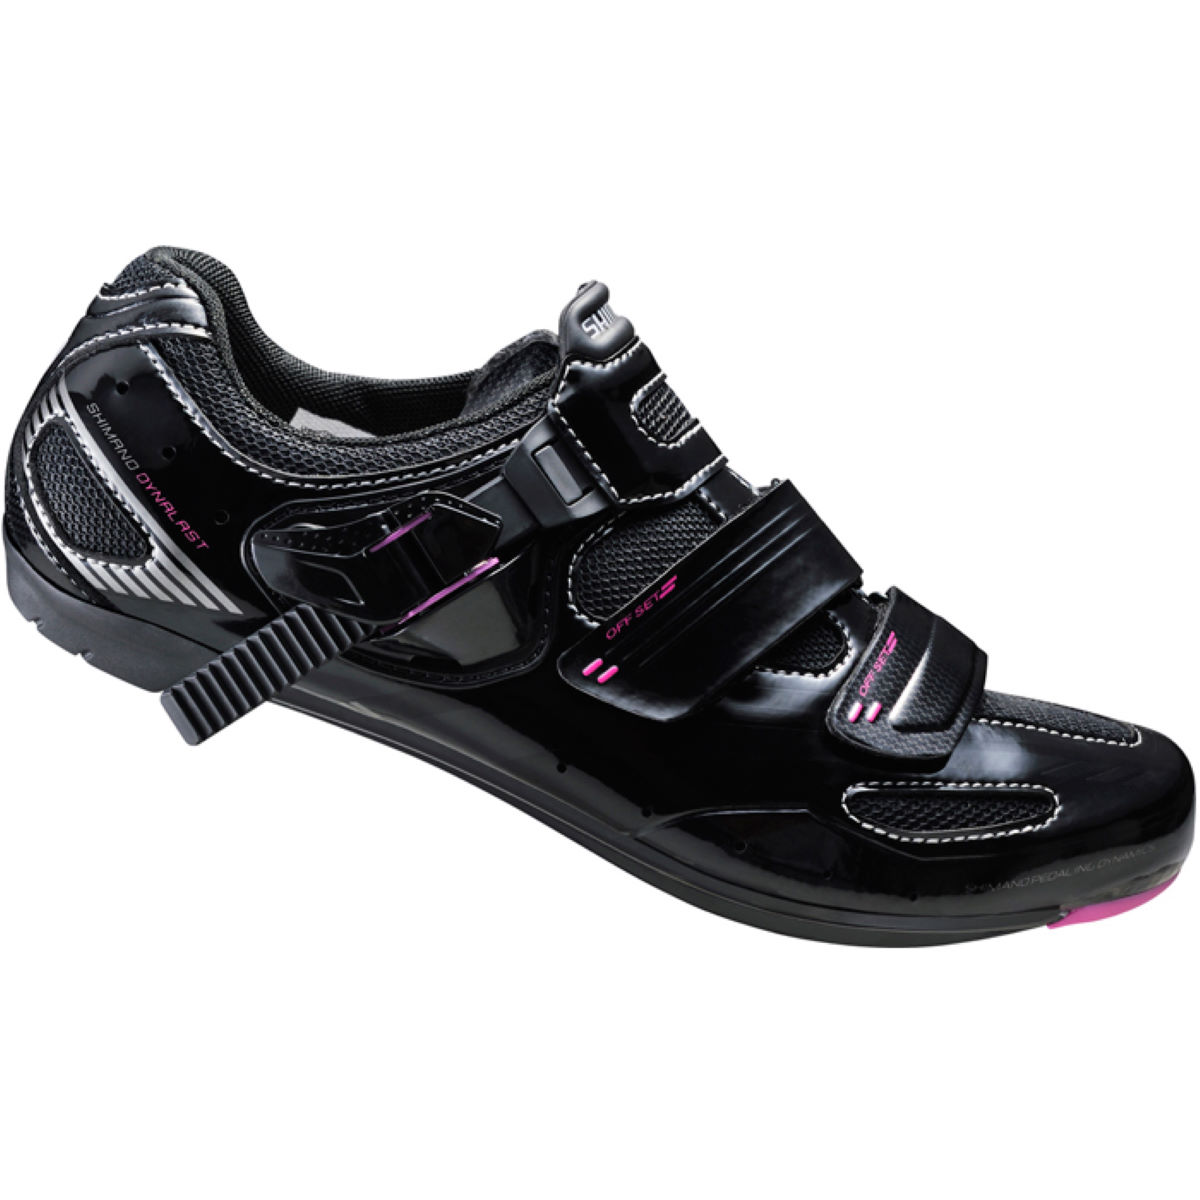 shimano cycling shoes shop for cheap cycling and save